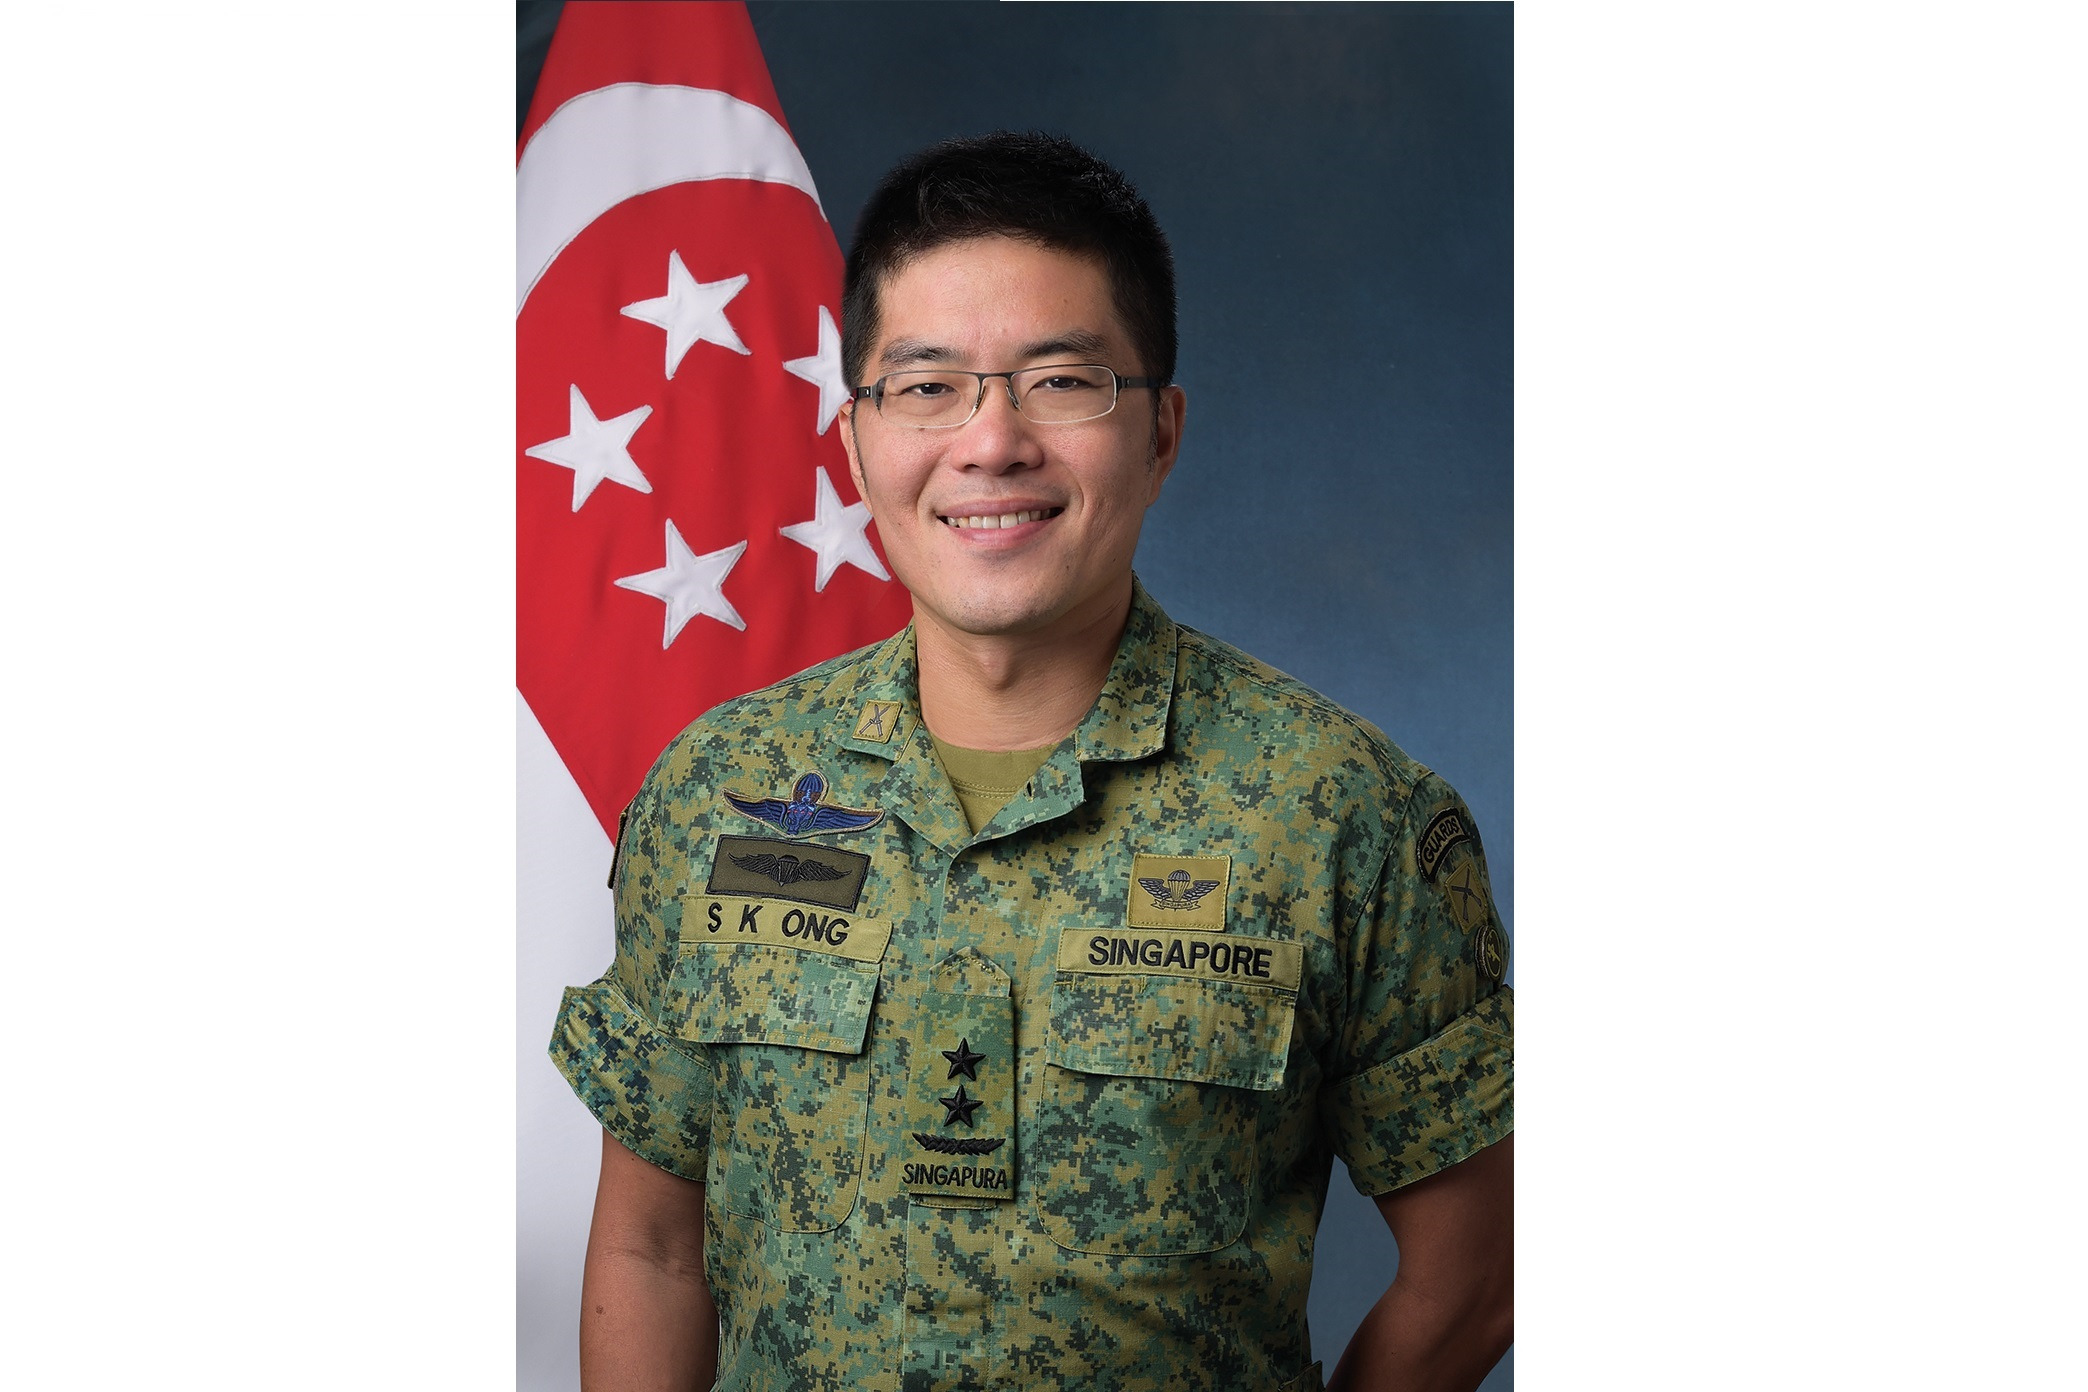 Major-General (MG) Melvyn Ong Su Kiat, currently Chief of Army, will take over as Chief of Defence Force on 23 March 2018.